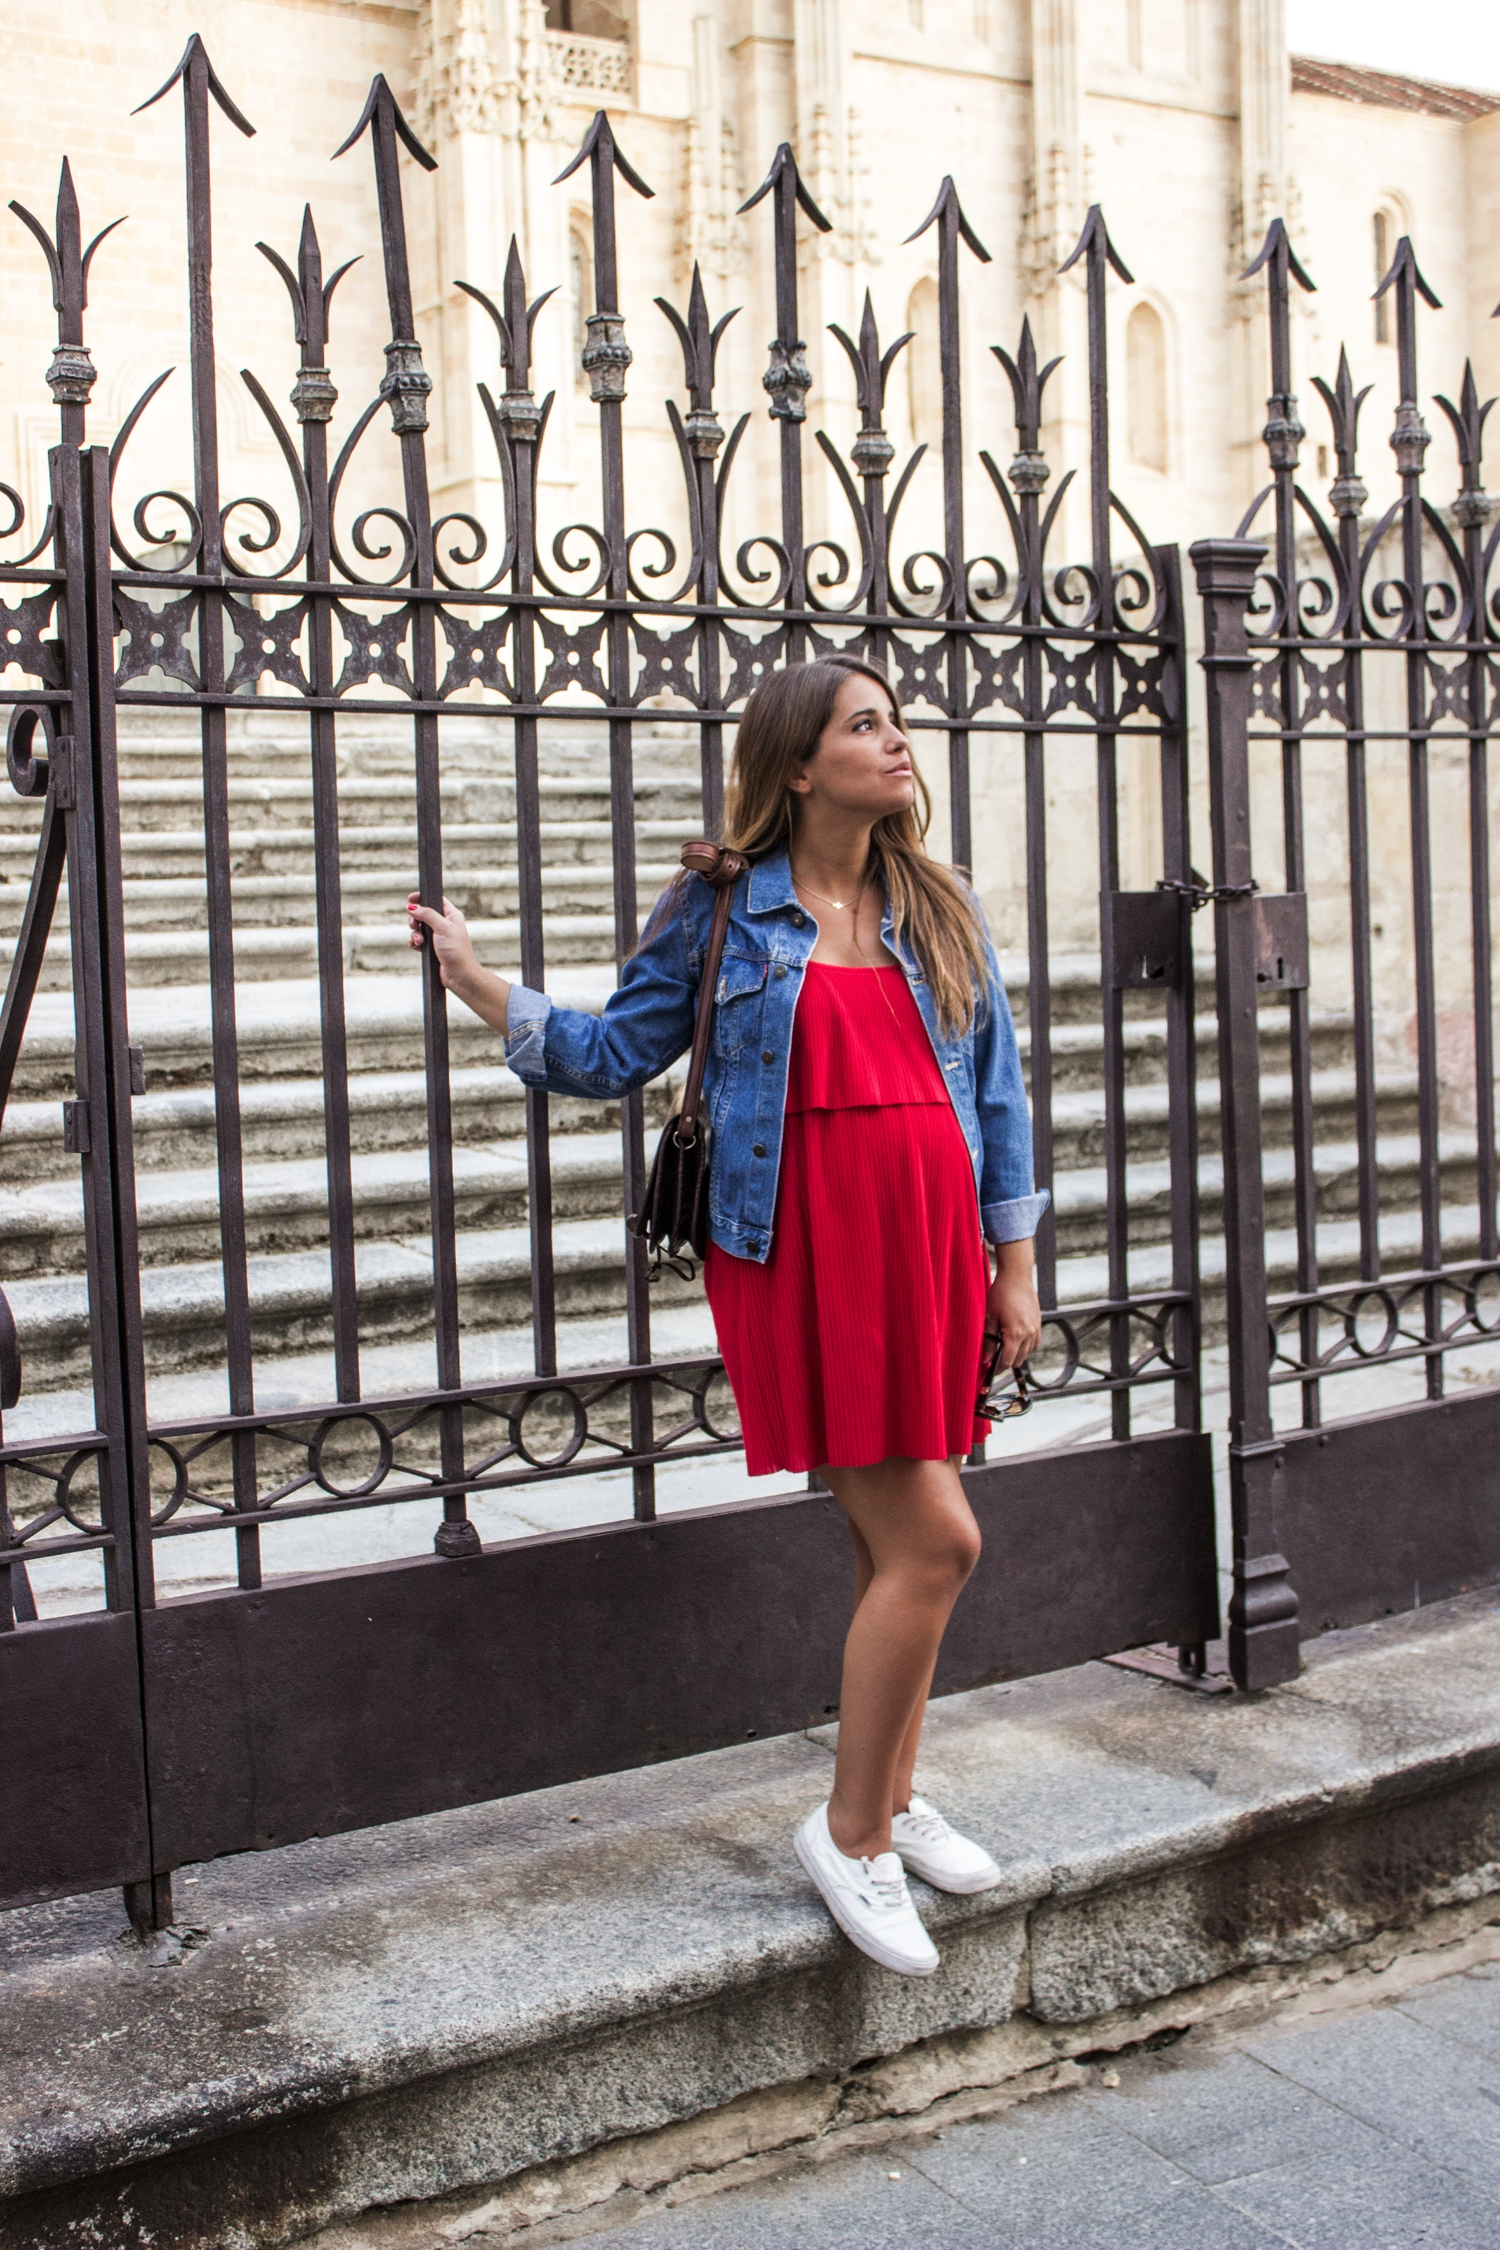 loreto-made-in-style-vestido-rojo-red-dress-segovia-leather-white-vans-denim-jacket-4